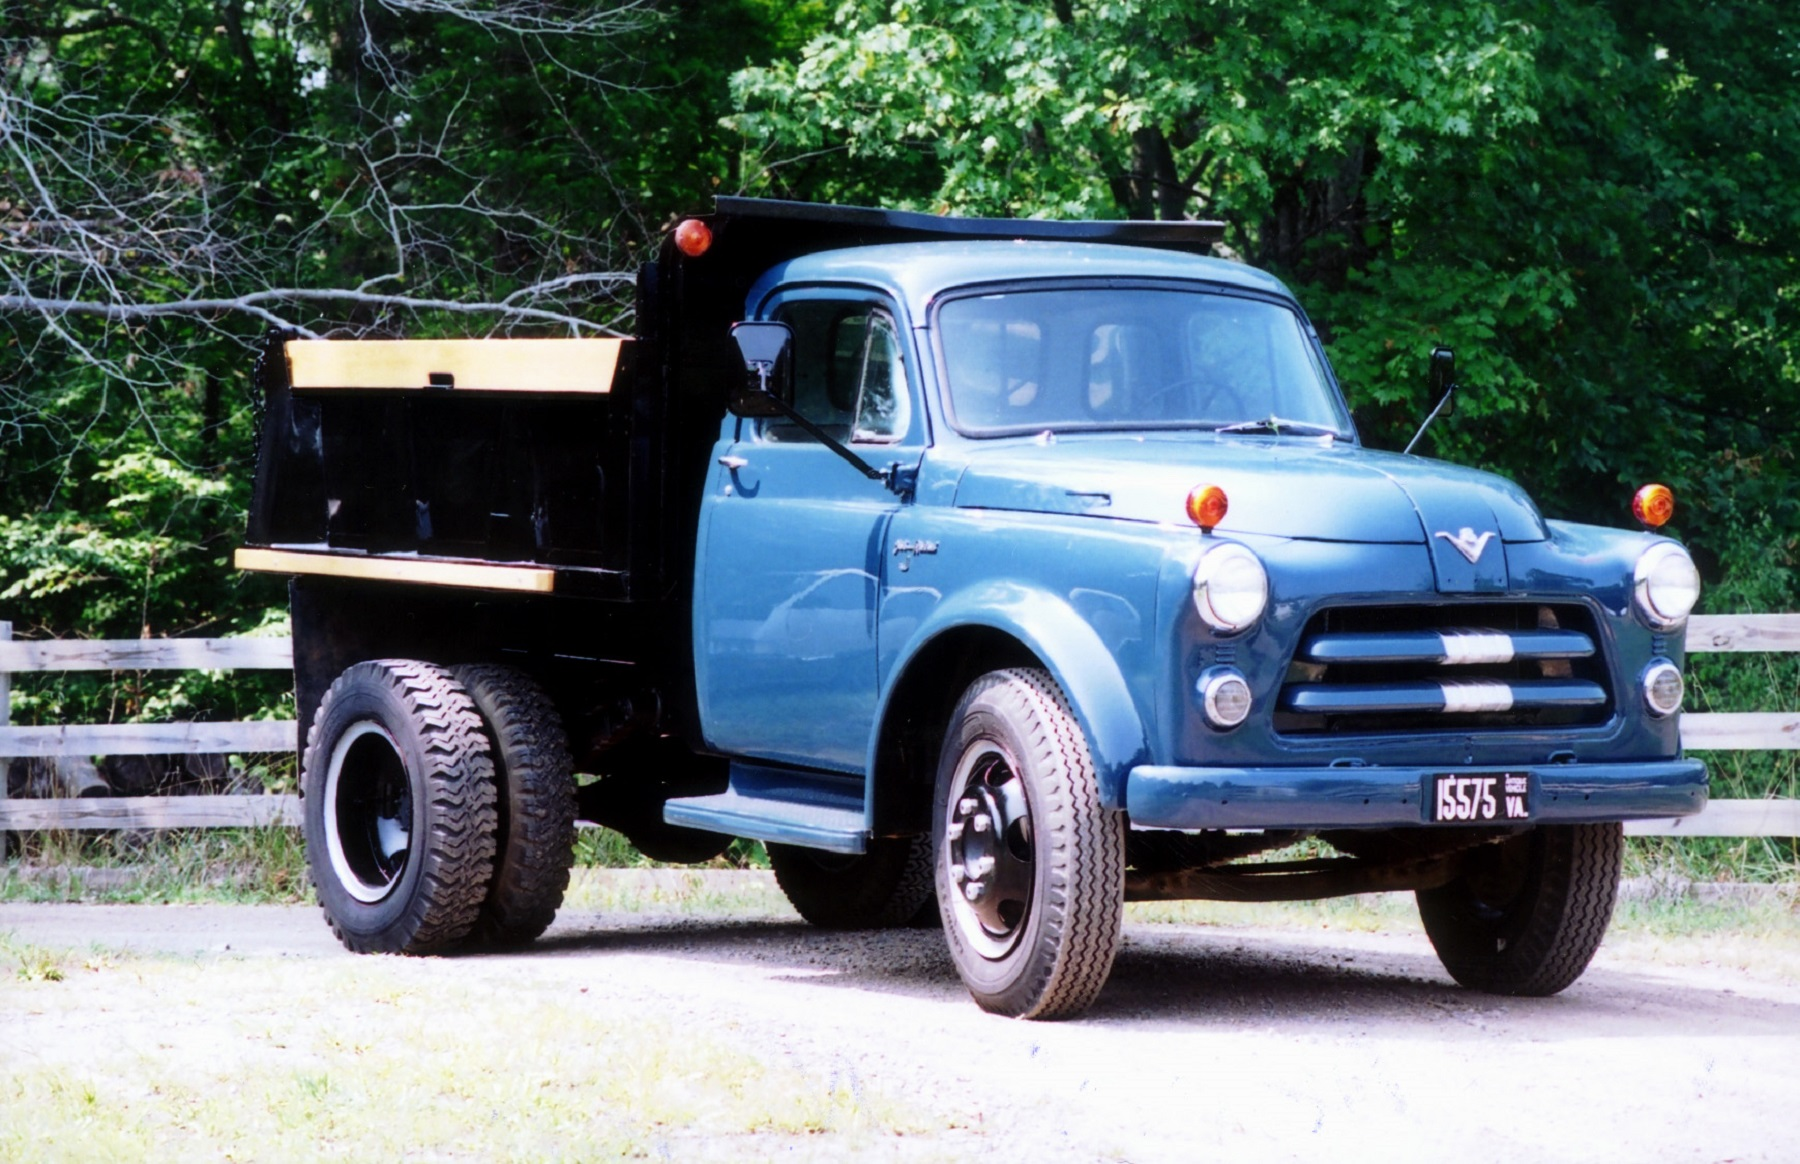 1954 Dodge Equipped With Desirable Hemi V 8 Classic Classics 1950s Cars Johnson Recalls The Day He Watched Delivery Of A Brand New Truck To Neighbor Pickup Was Fifth Wheel And